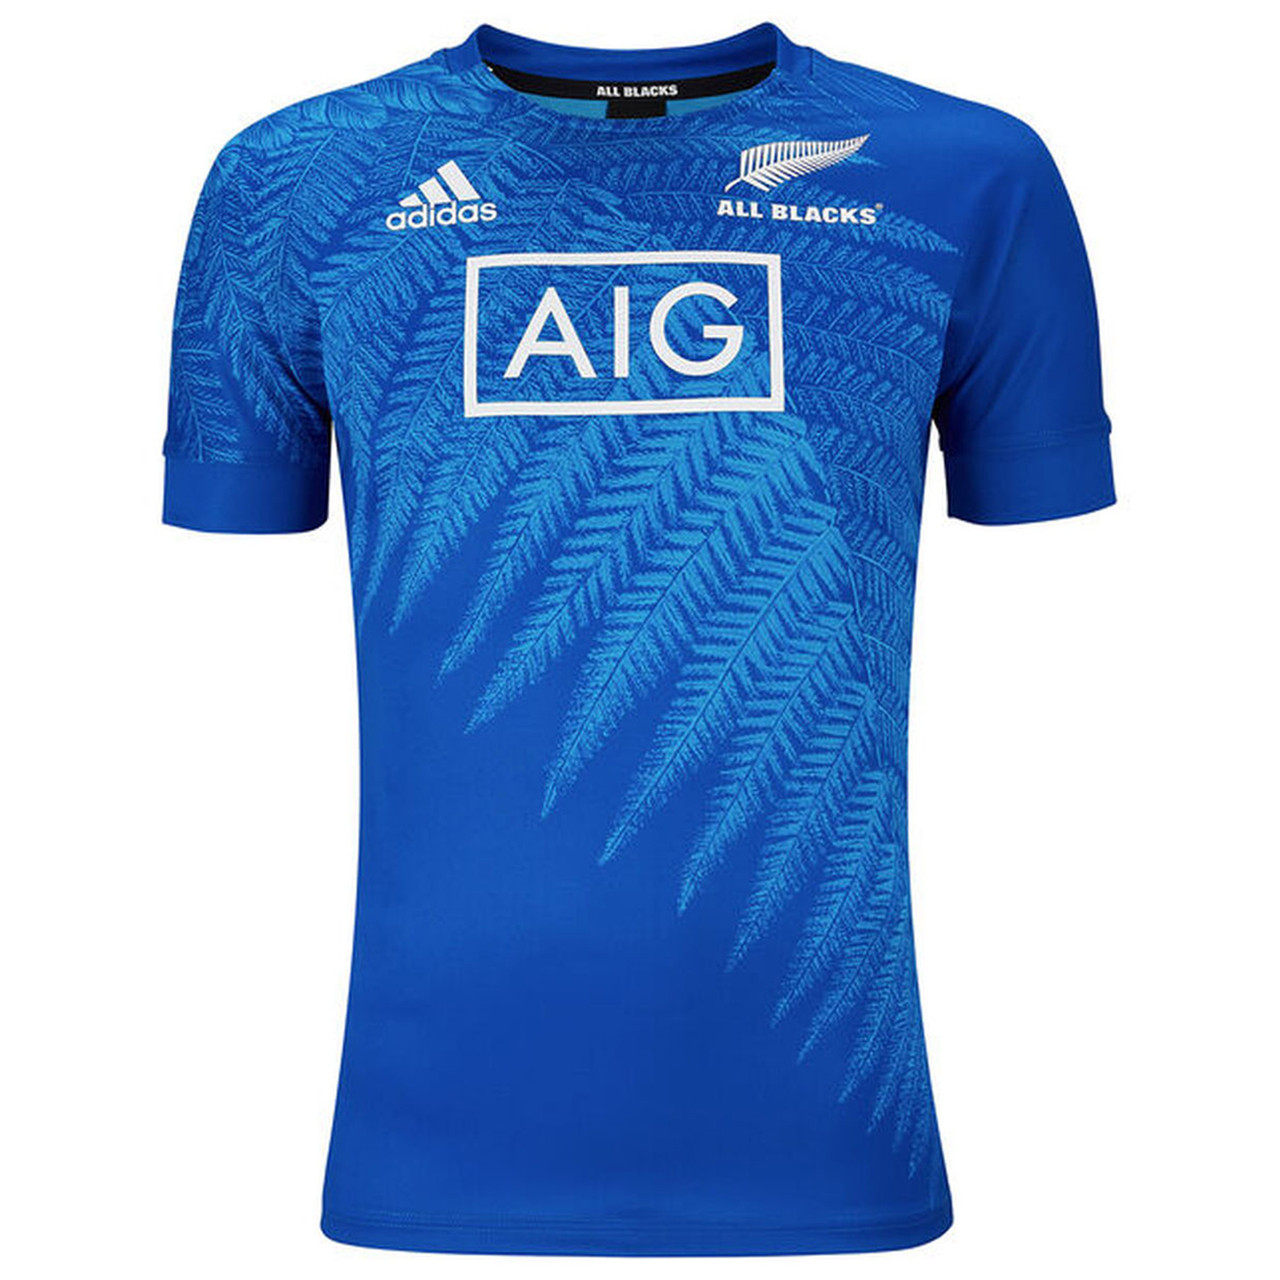 Adidas New Zealand All Blacks Rugby World Cup Japan Training Jersey - Blue